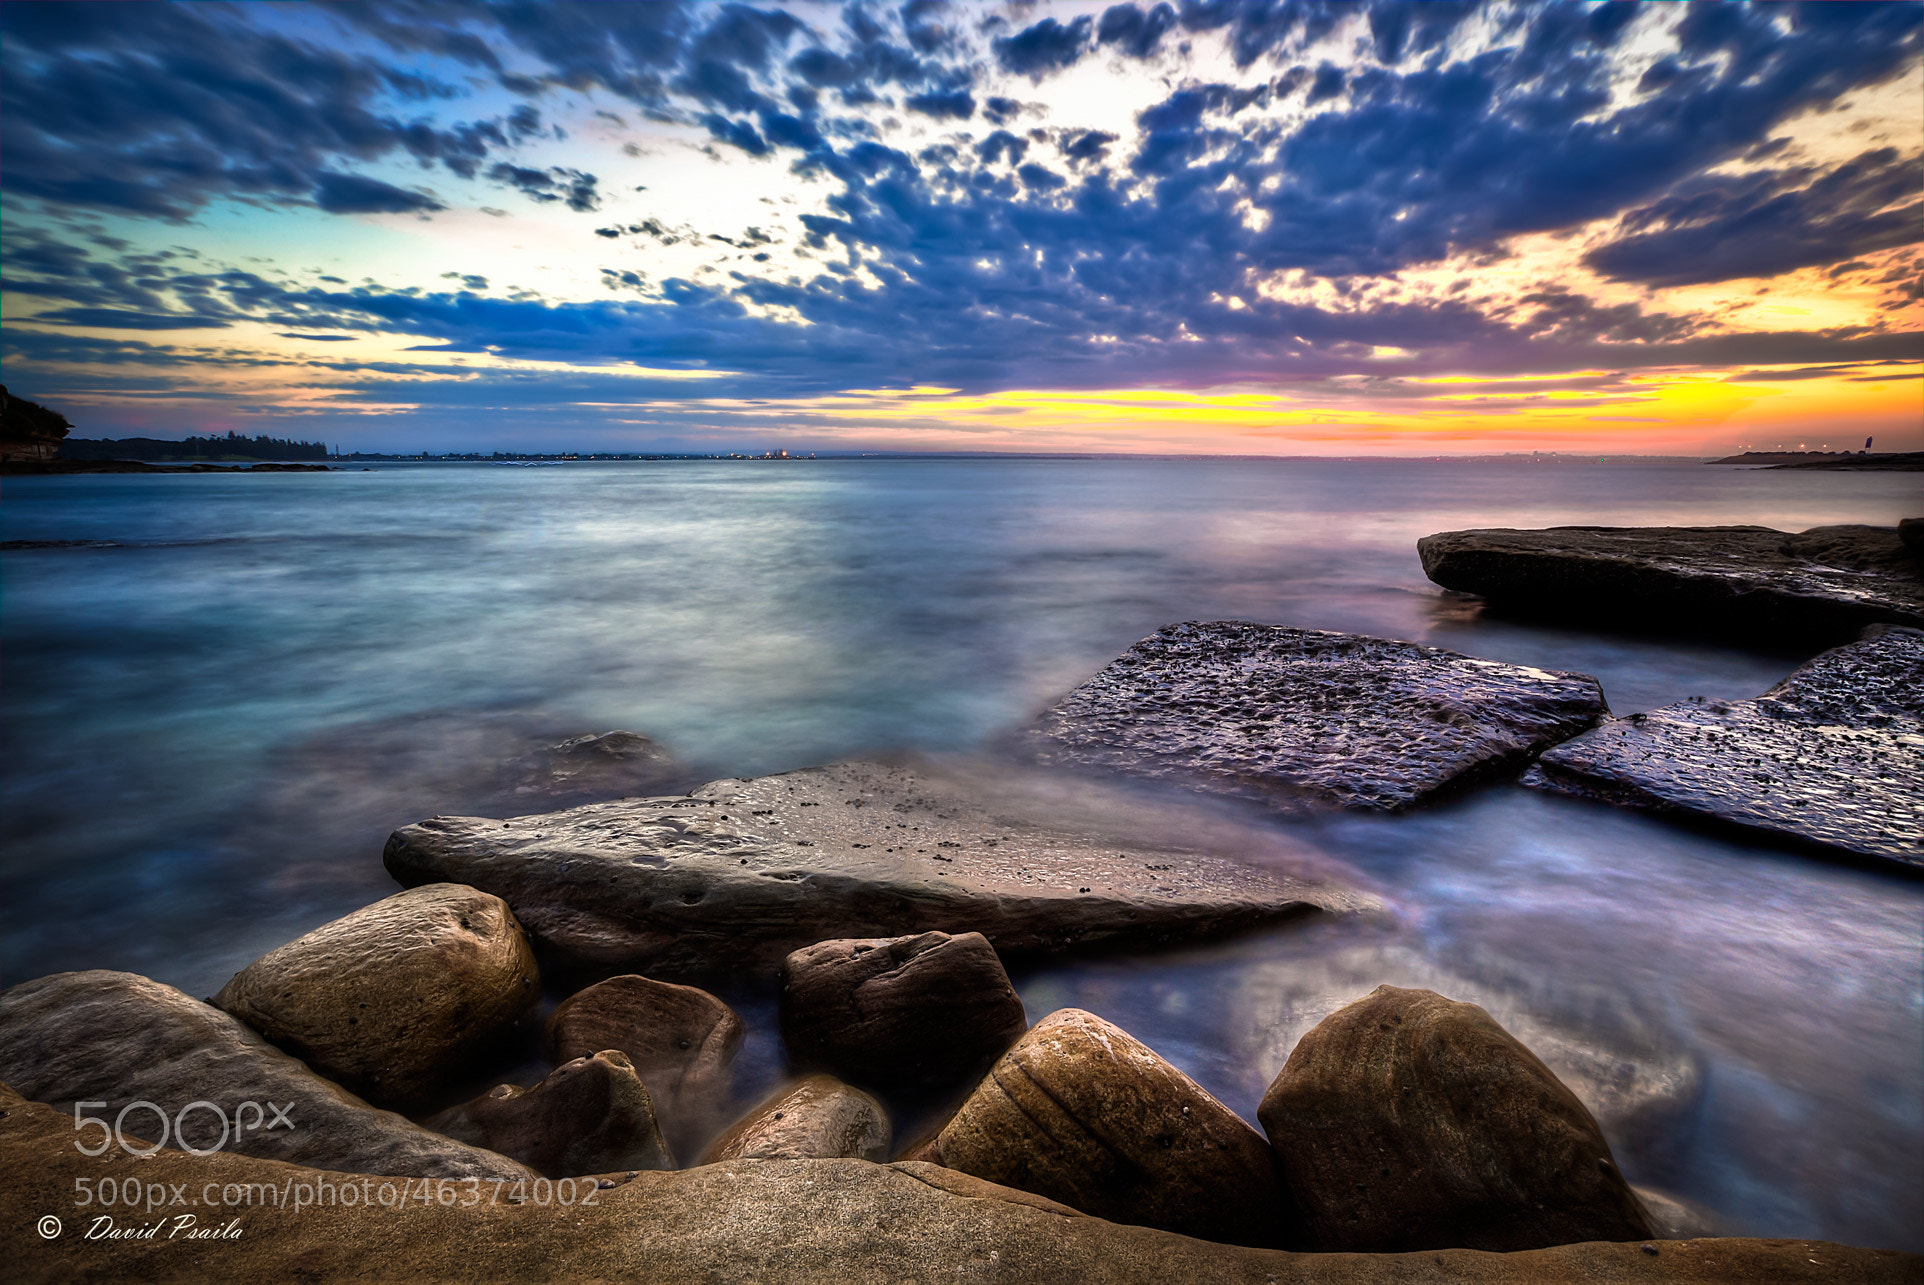 Photograph Just Another Sunset... by David Psaila on 500px